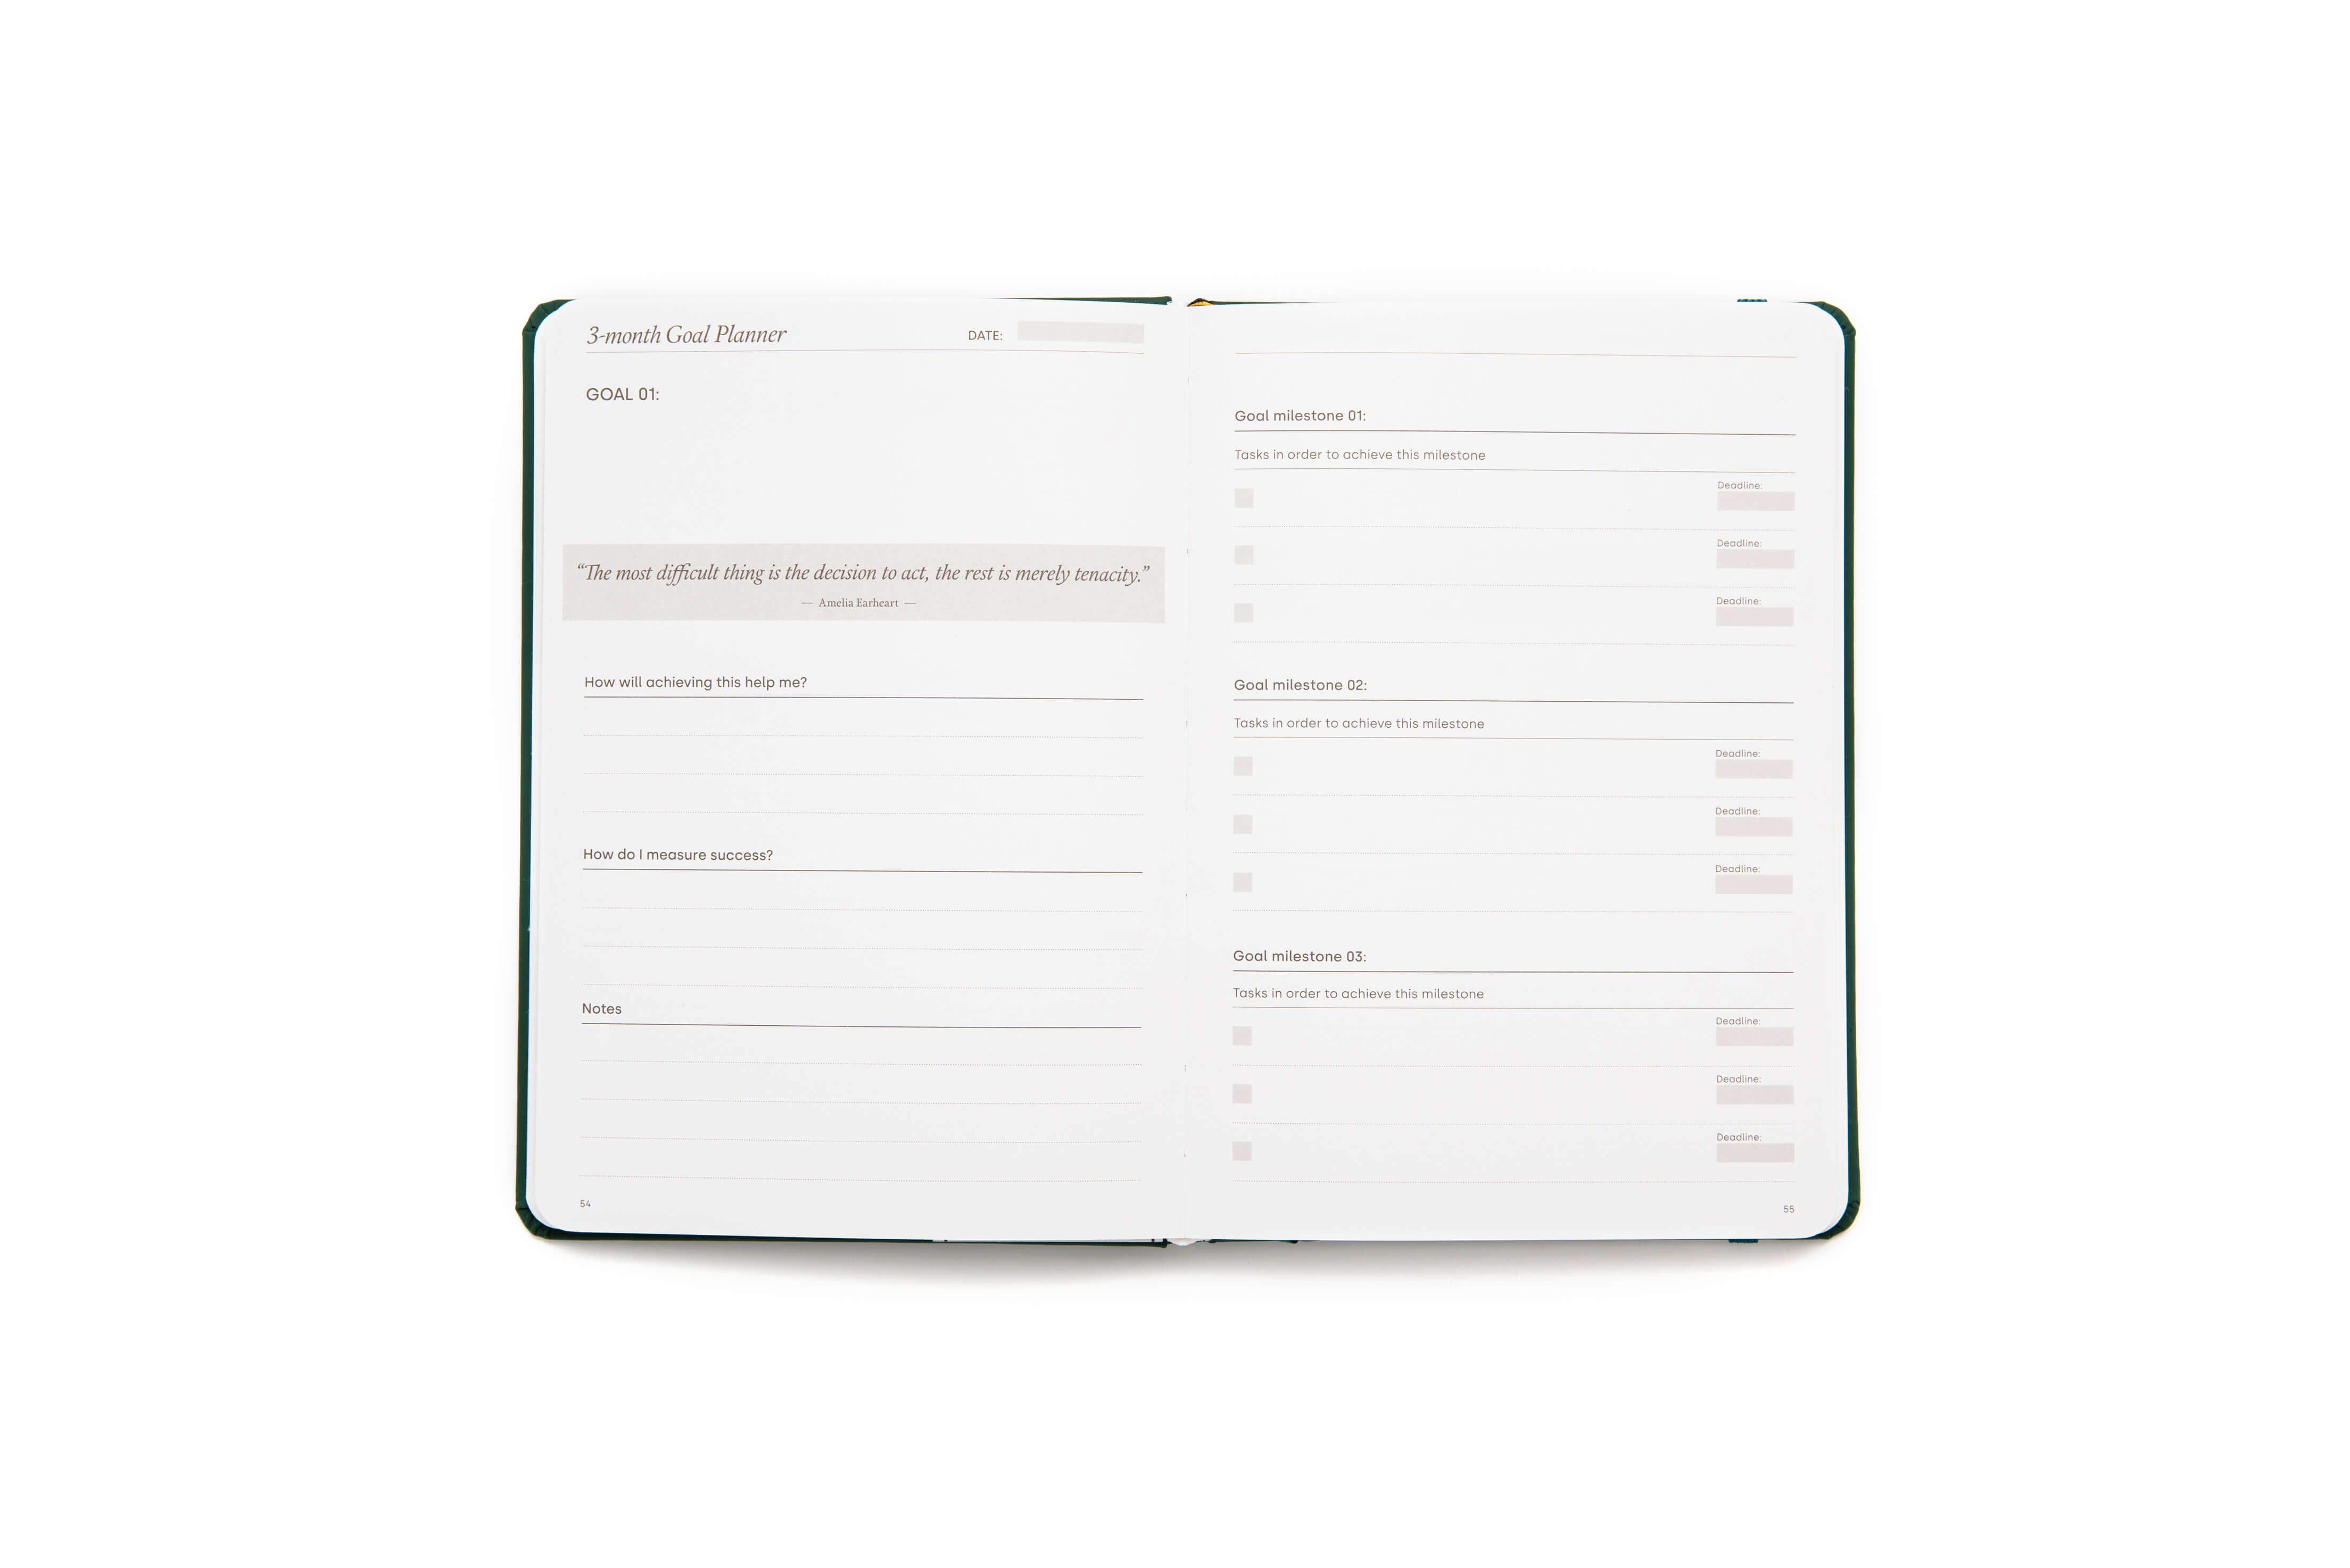 Power of 3 goal planner open on 3 month goal planner page